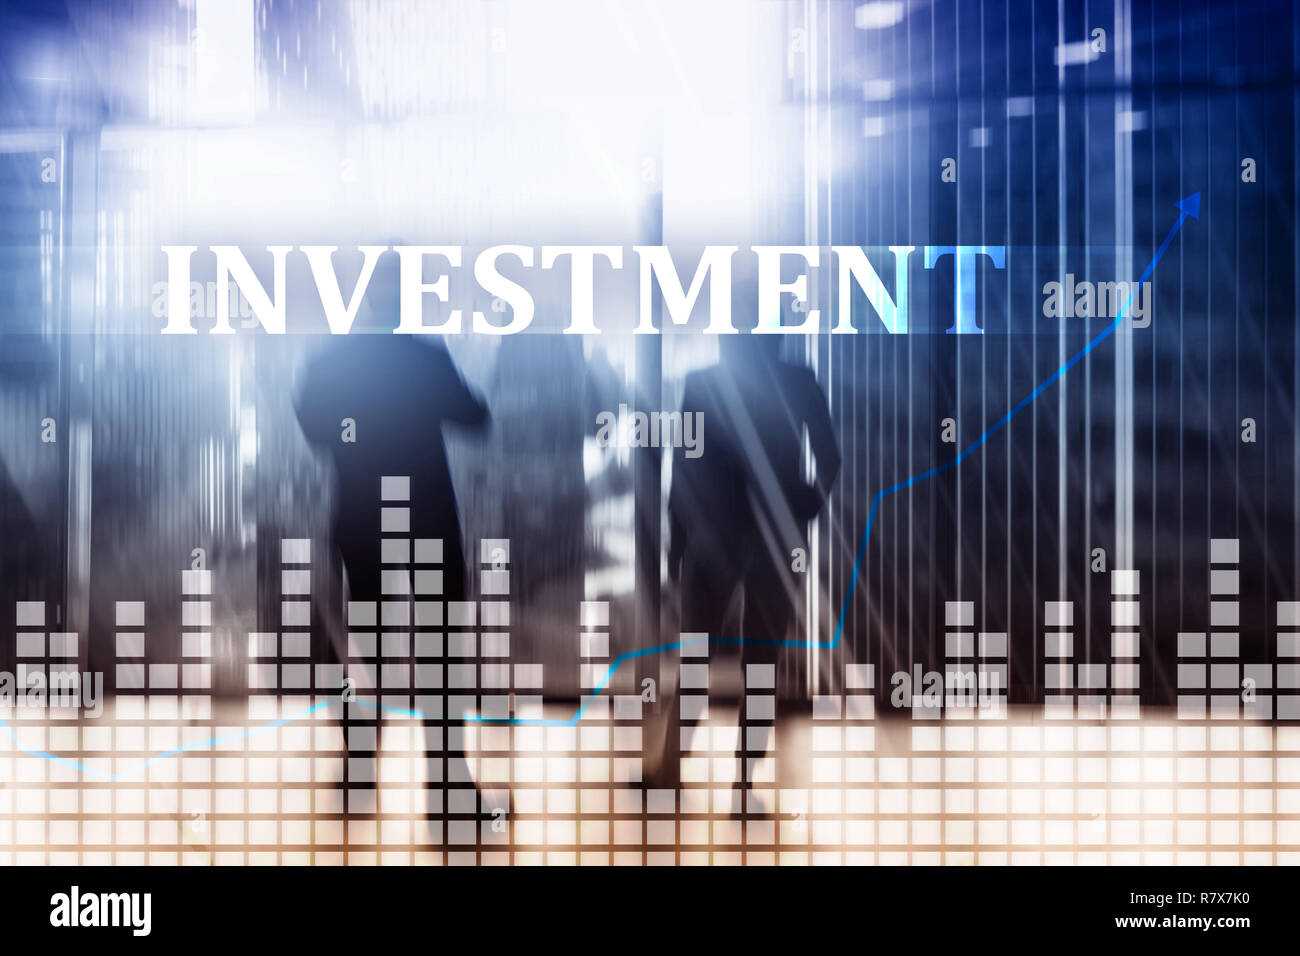 Investment, ROI, financial market concept. People in jackets on the background of the city - Stock Image